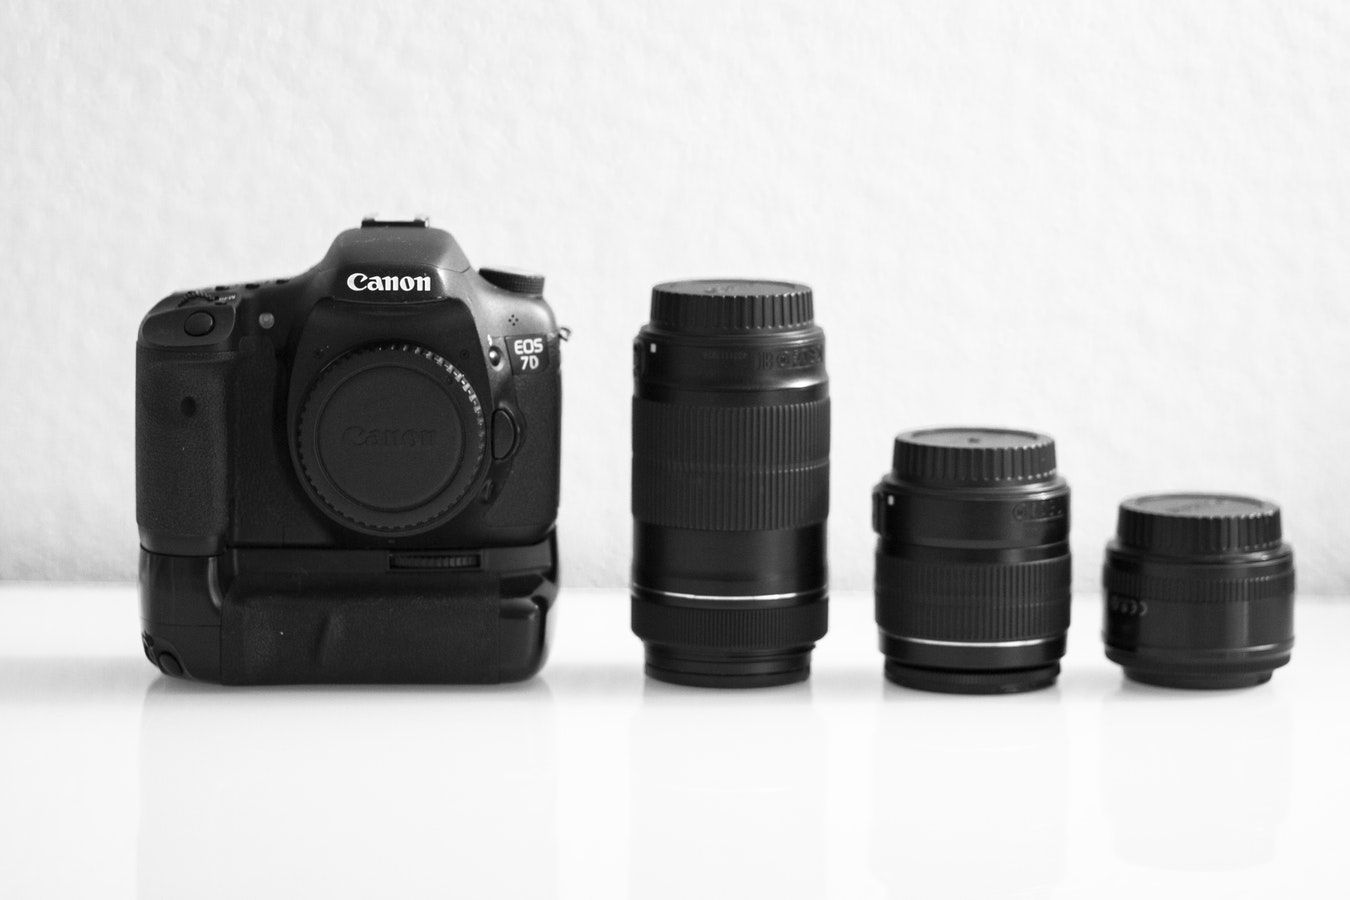 Canon EOS 7D DSLR camera with battery pack and three interchangeable lenses